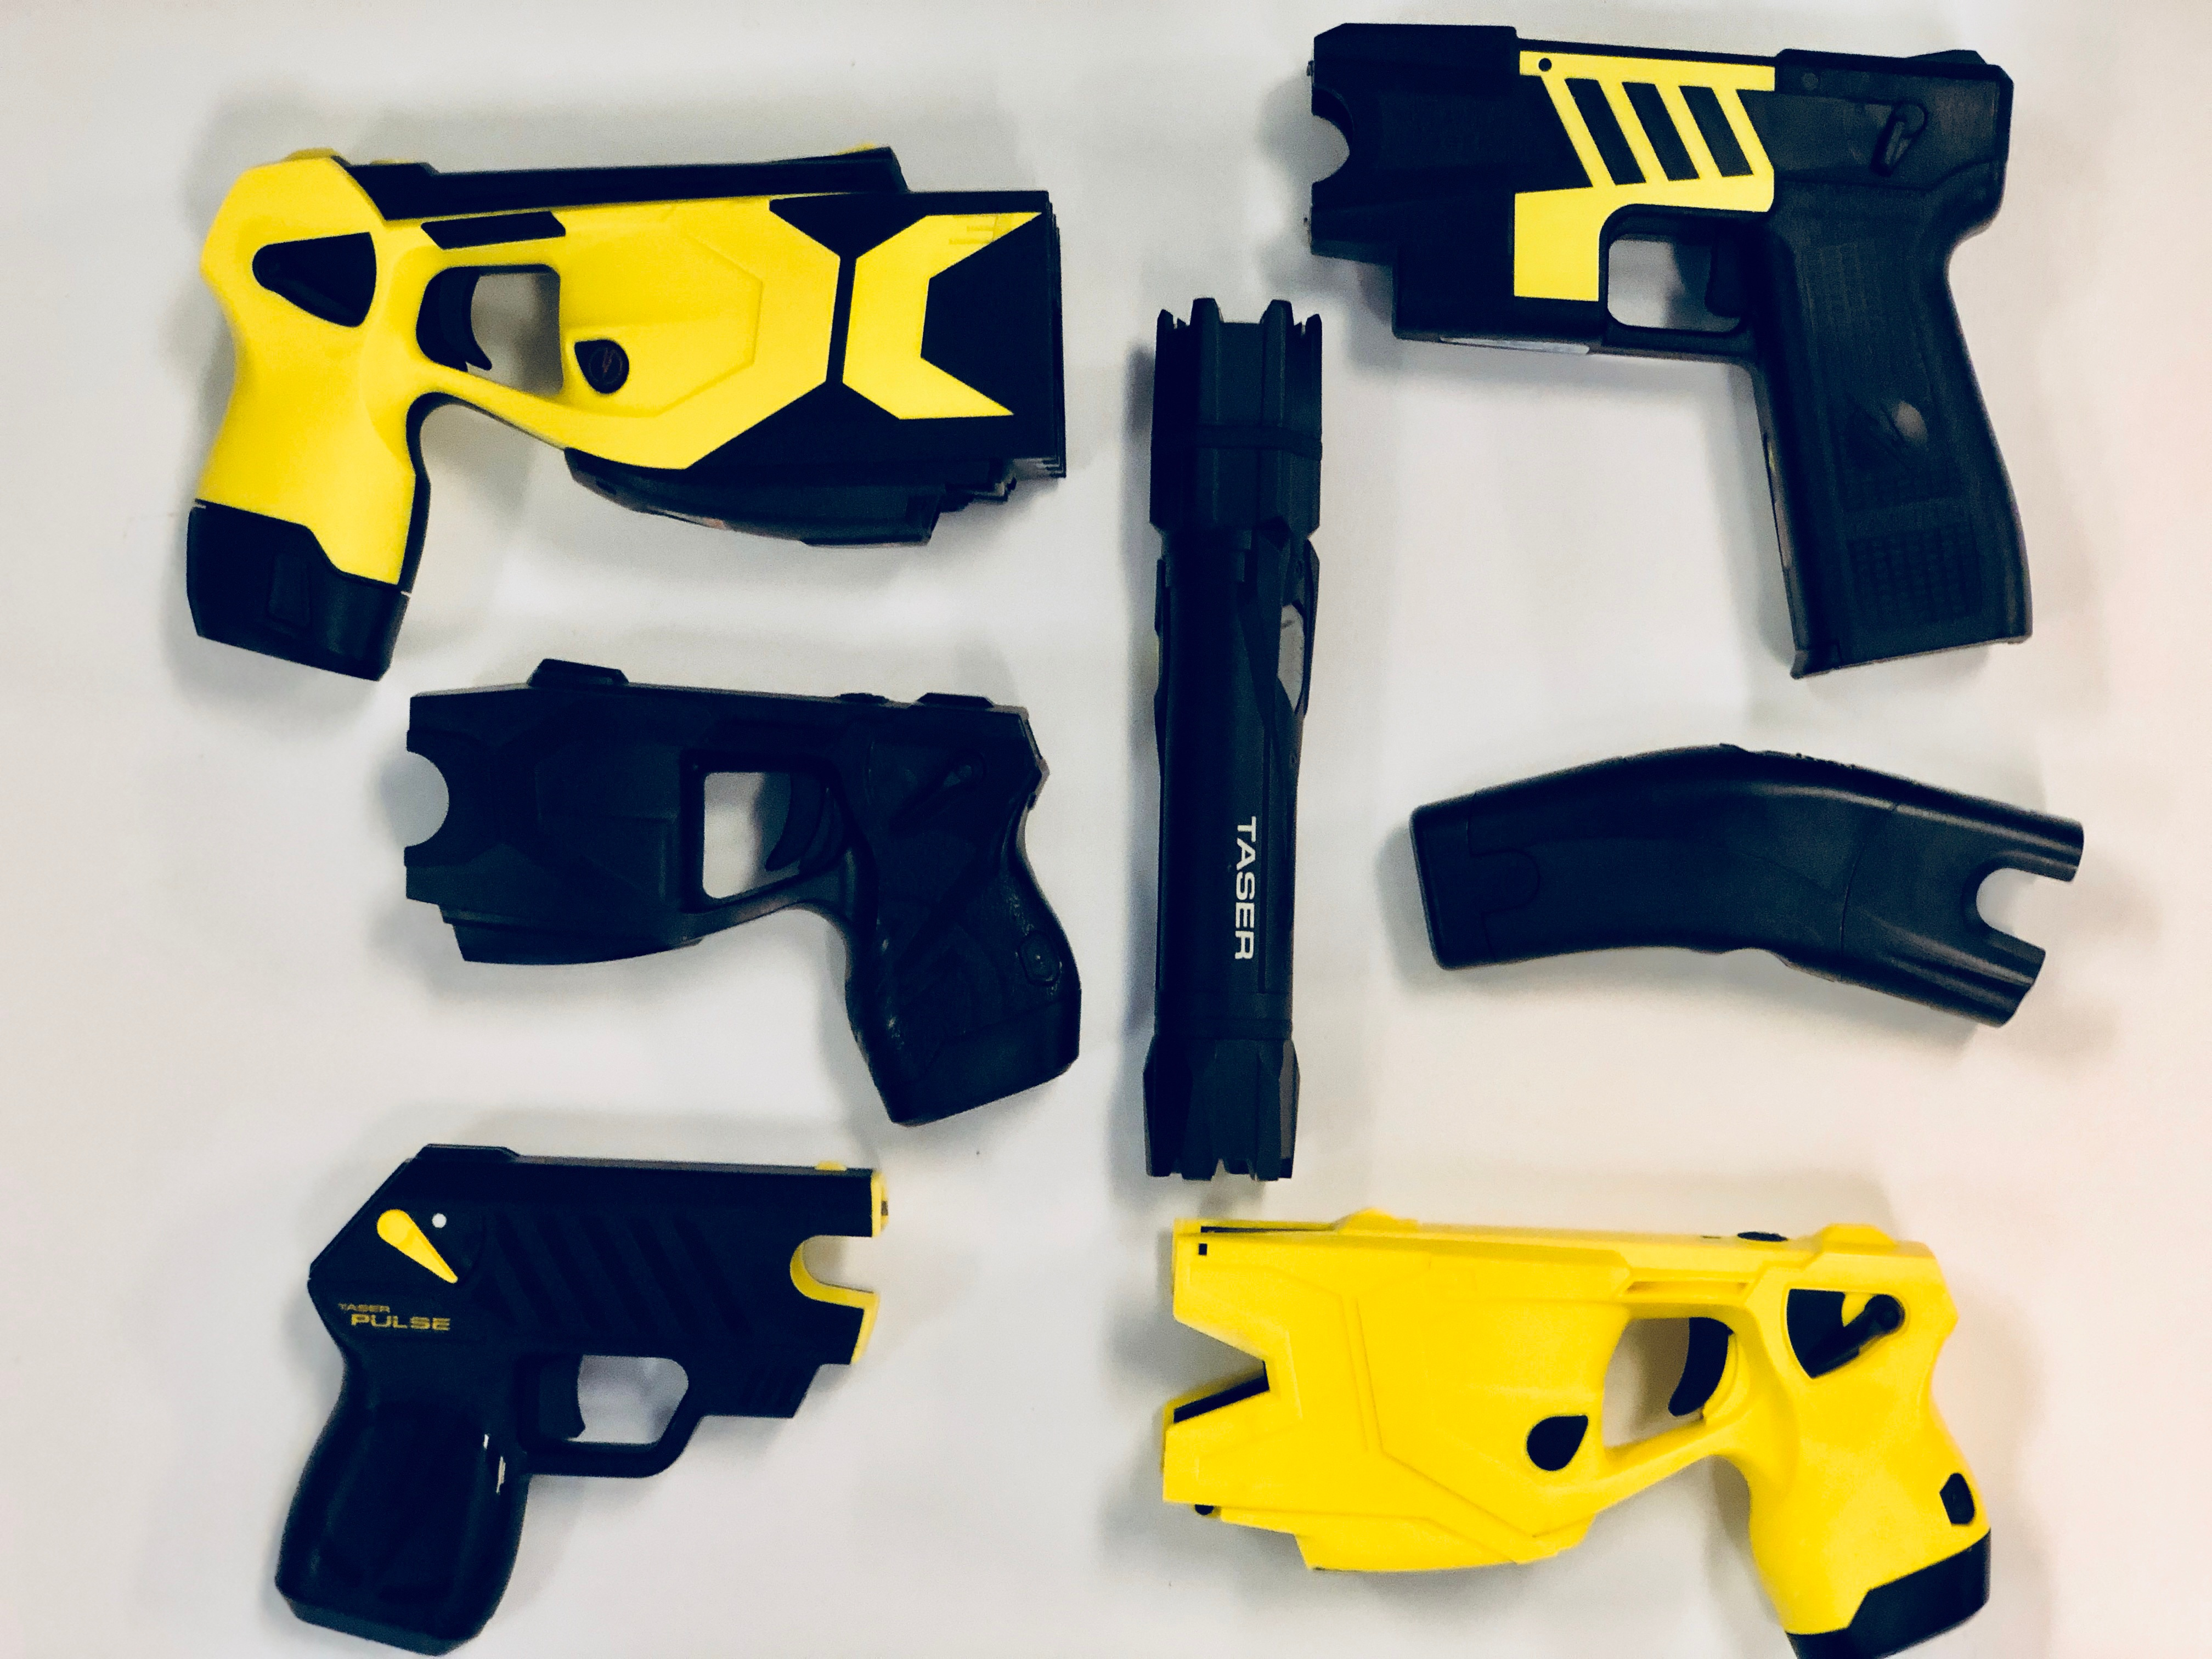 TASER Devices All Generations